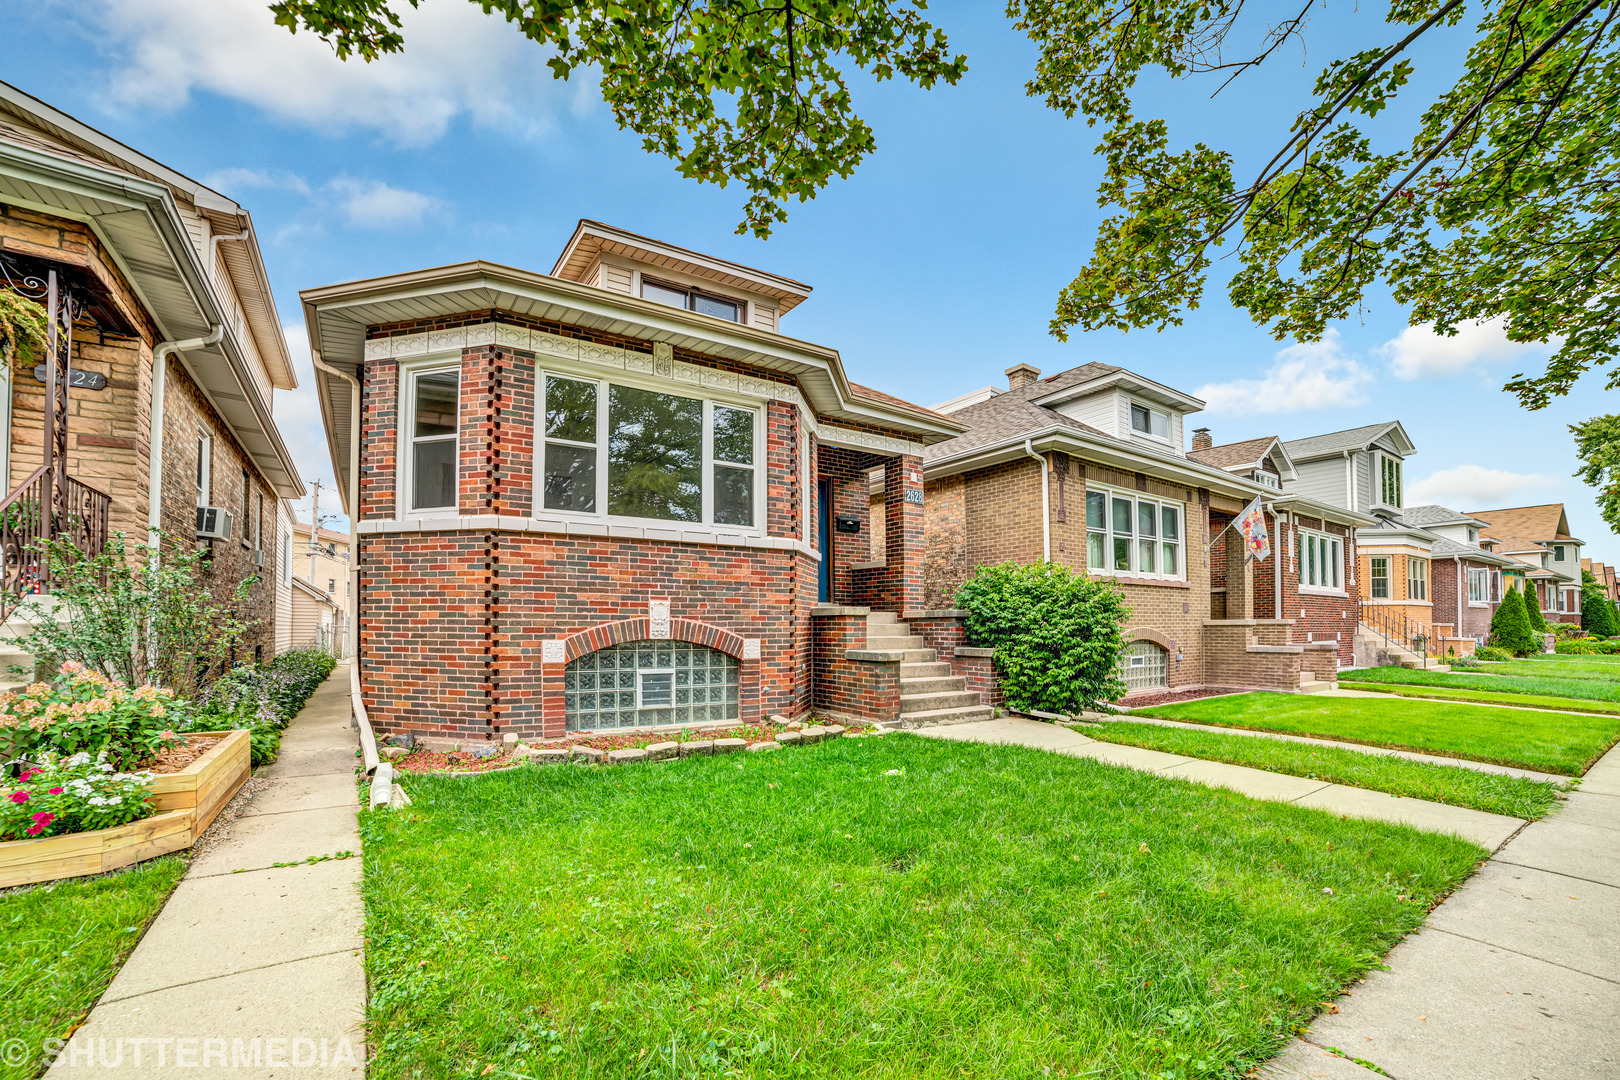 2628 North 76th, Elmwood Park, Illinois, 60707